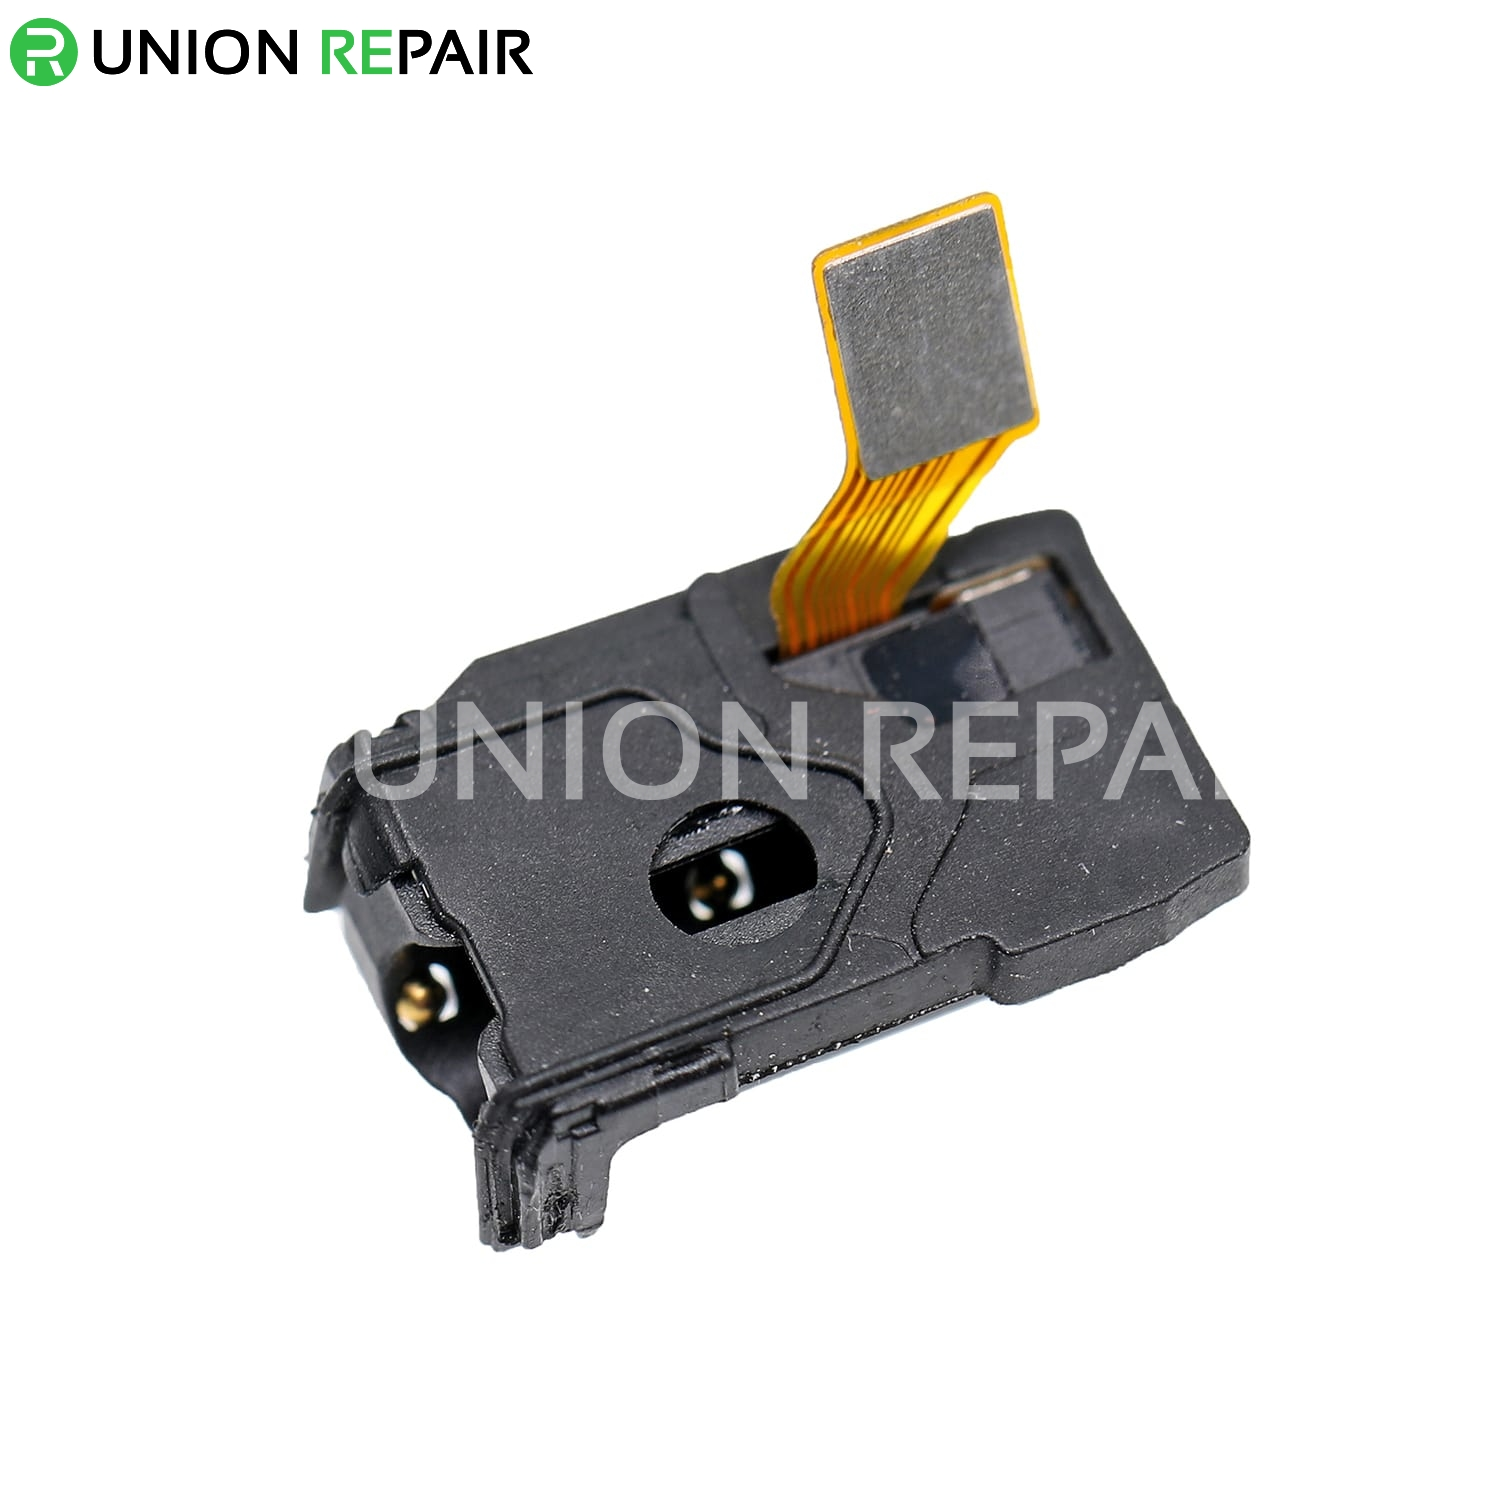 Replacement for Huawei P9 Plus Headphone Jack Flex Cable